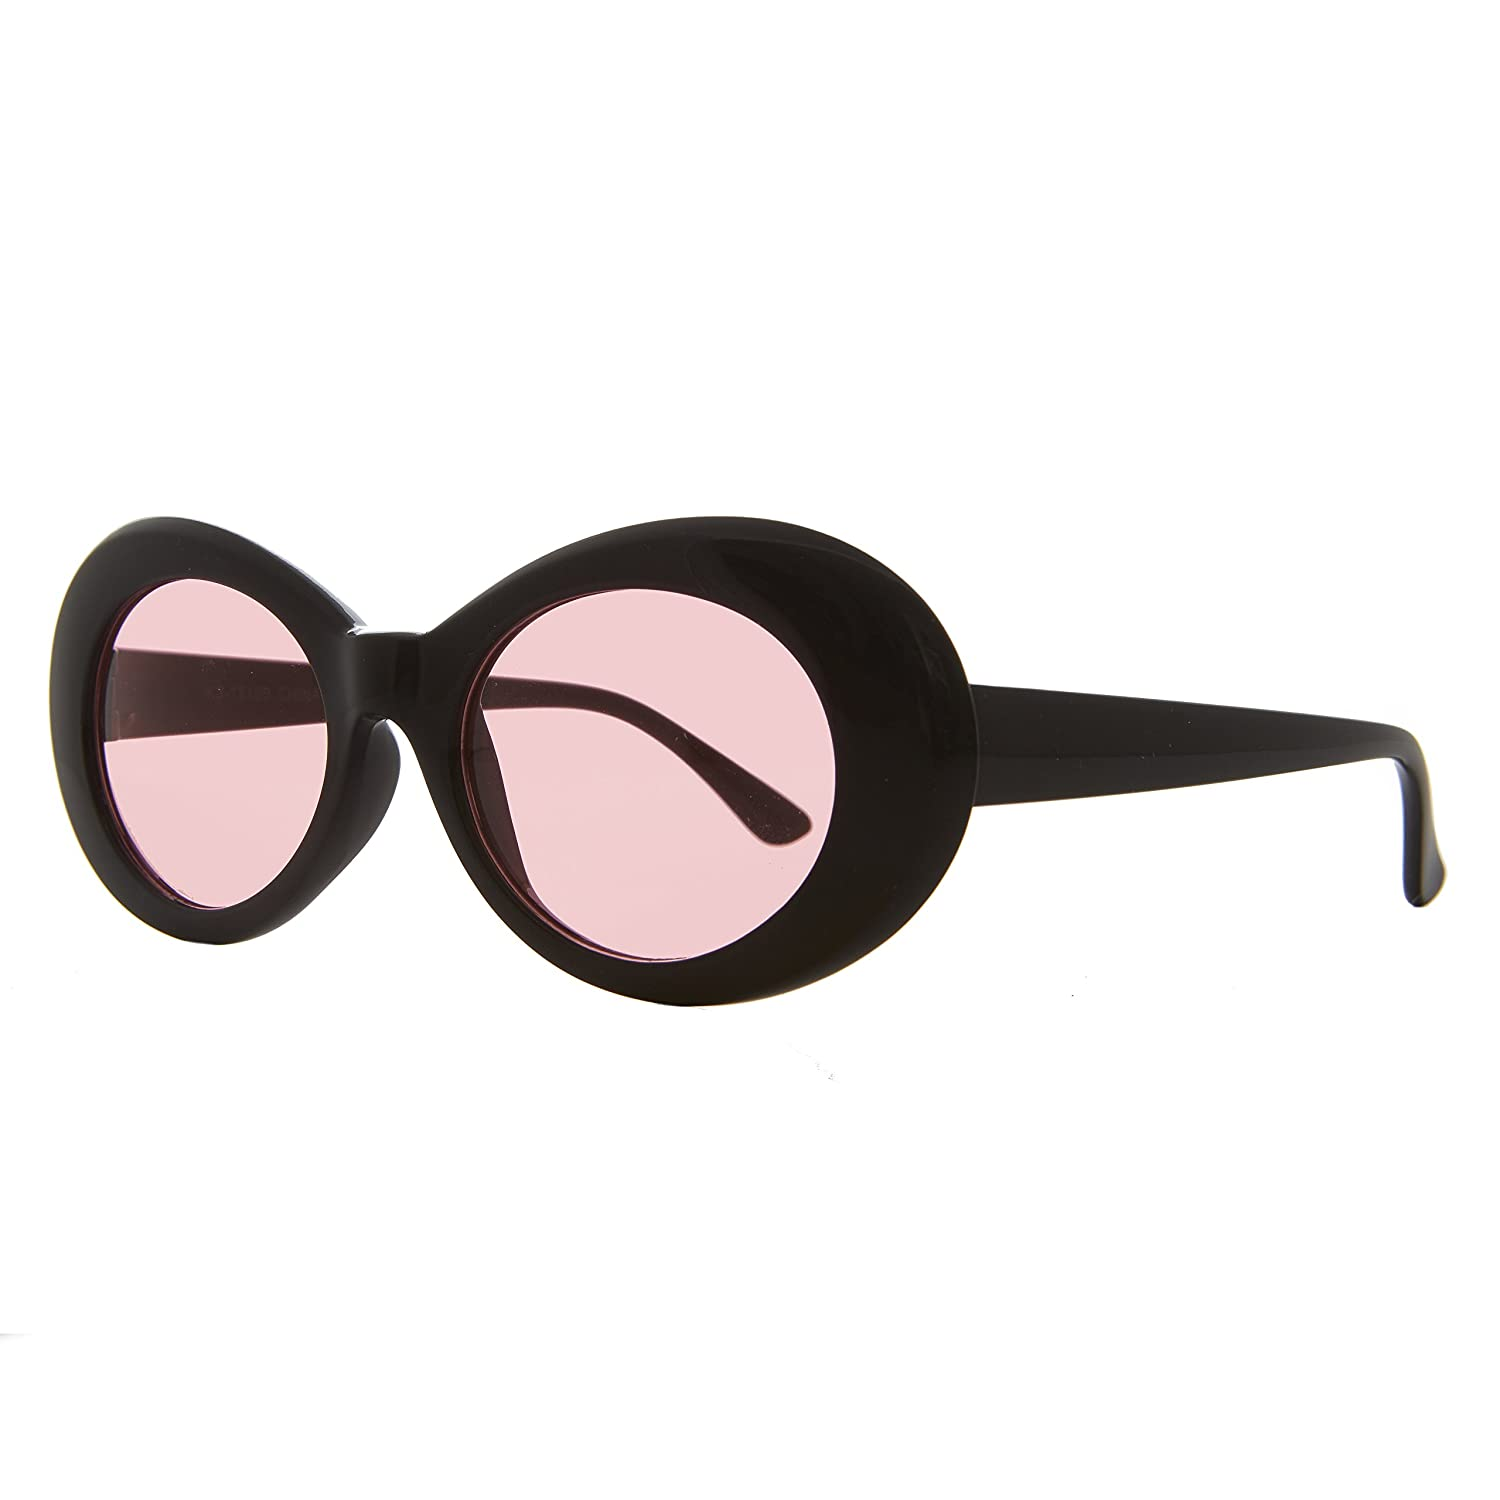 Black Clout Sunglasses with Pink Lens